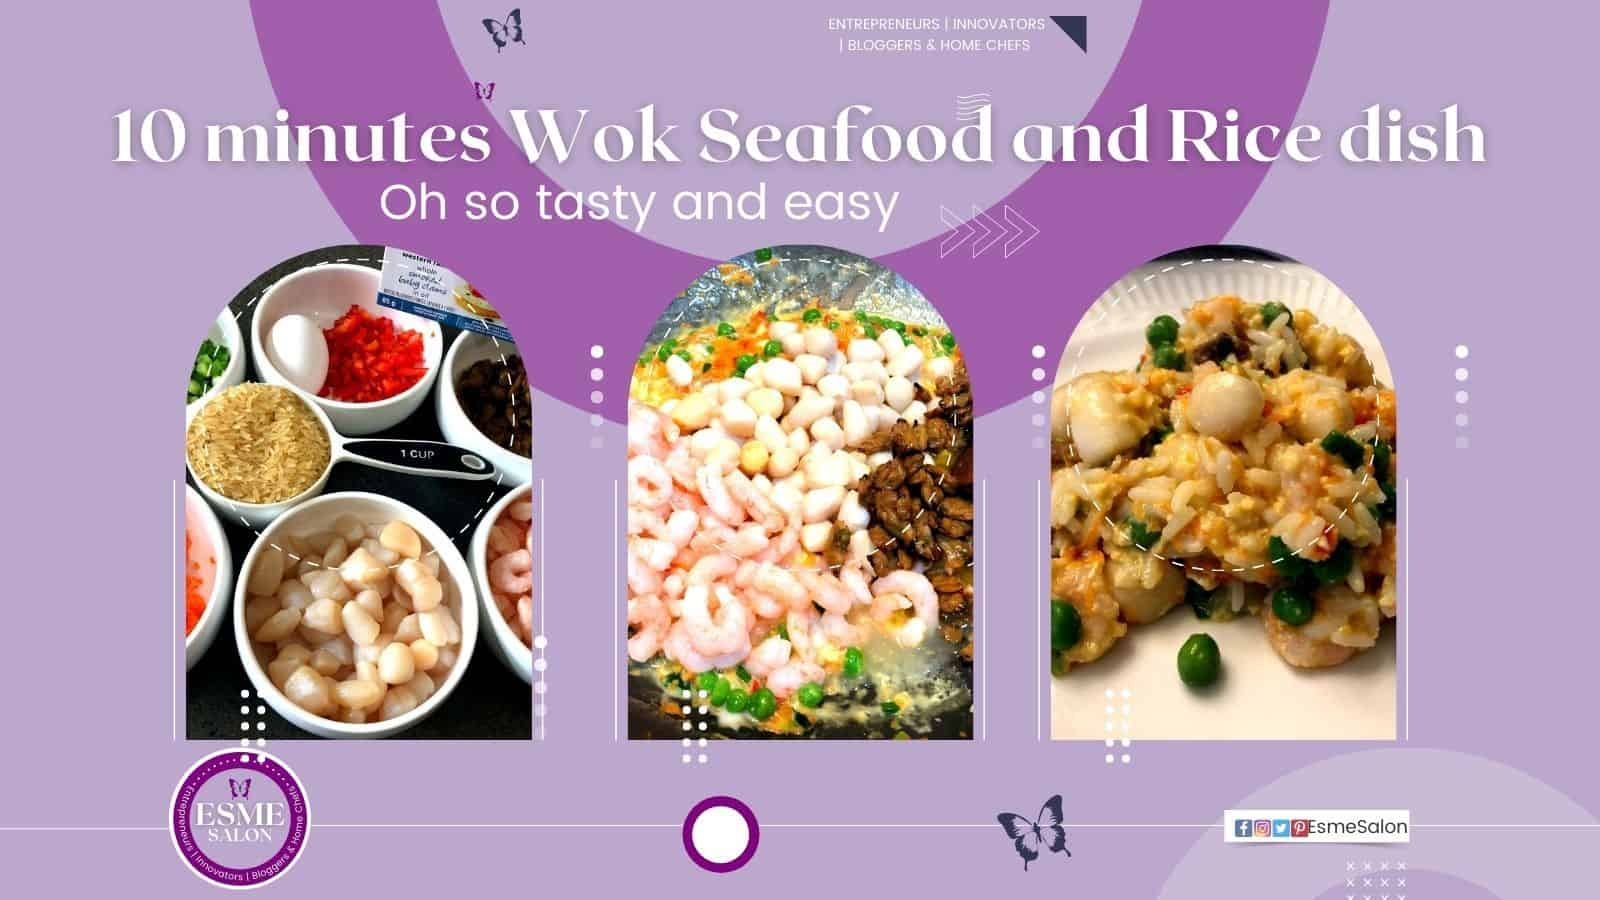 Seafood paella meal, first image bowls with egg, raw rice, scallions, shrimps. Second image, mixture of all ingredients in the wok, and third image, plated meal with green peas